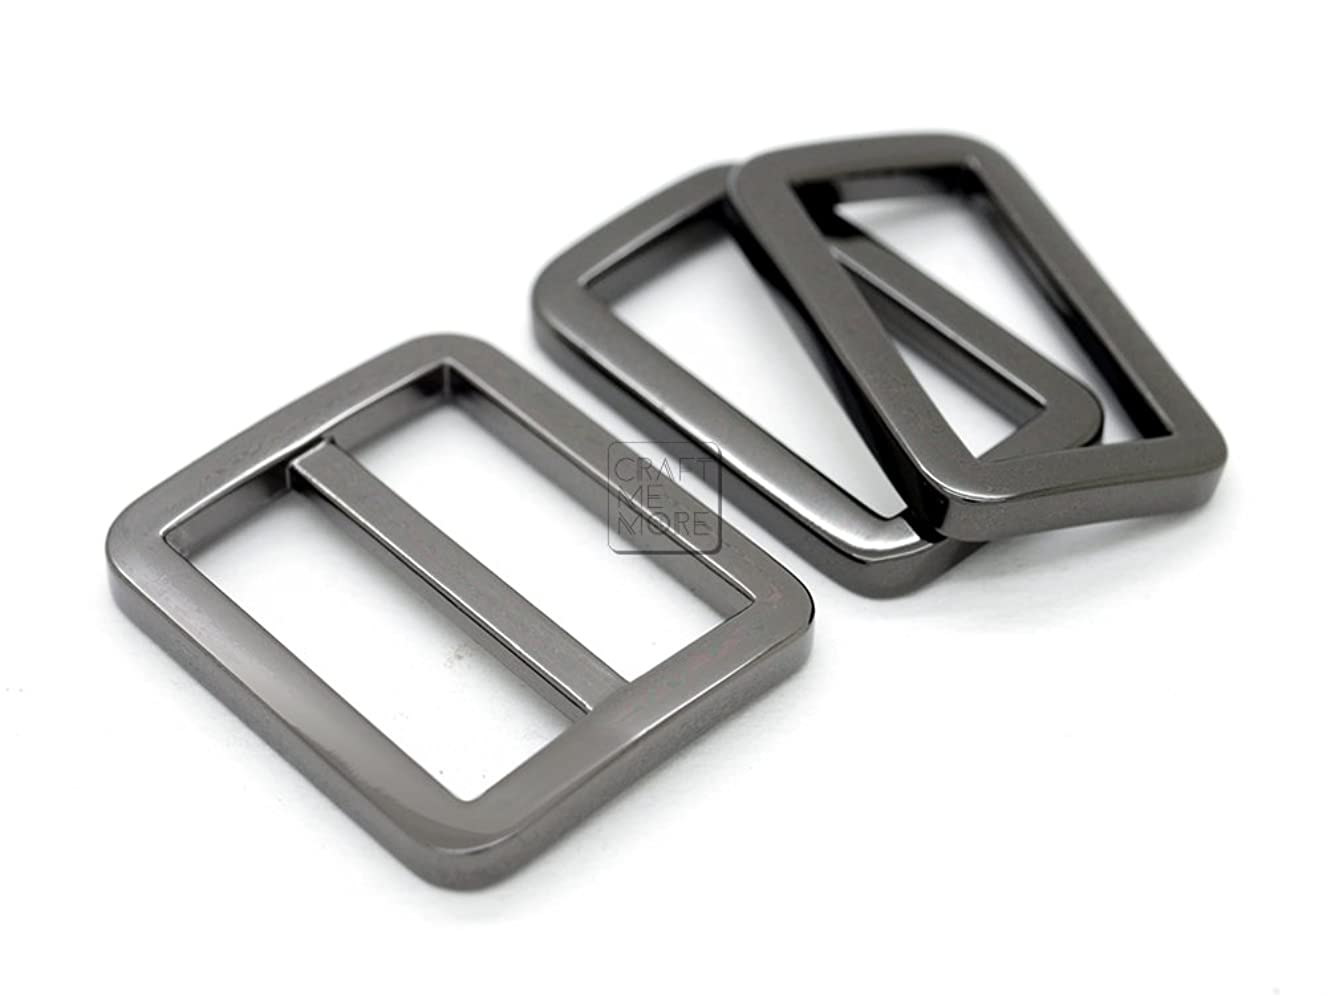 CRAFTMEmore 1SET Gunmetal Black FLAT Purse Slider and Loops 1PC Slide Buckle with 2PCS Rectangular Rings Leather Craft (1 Inches)